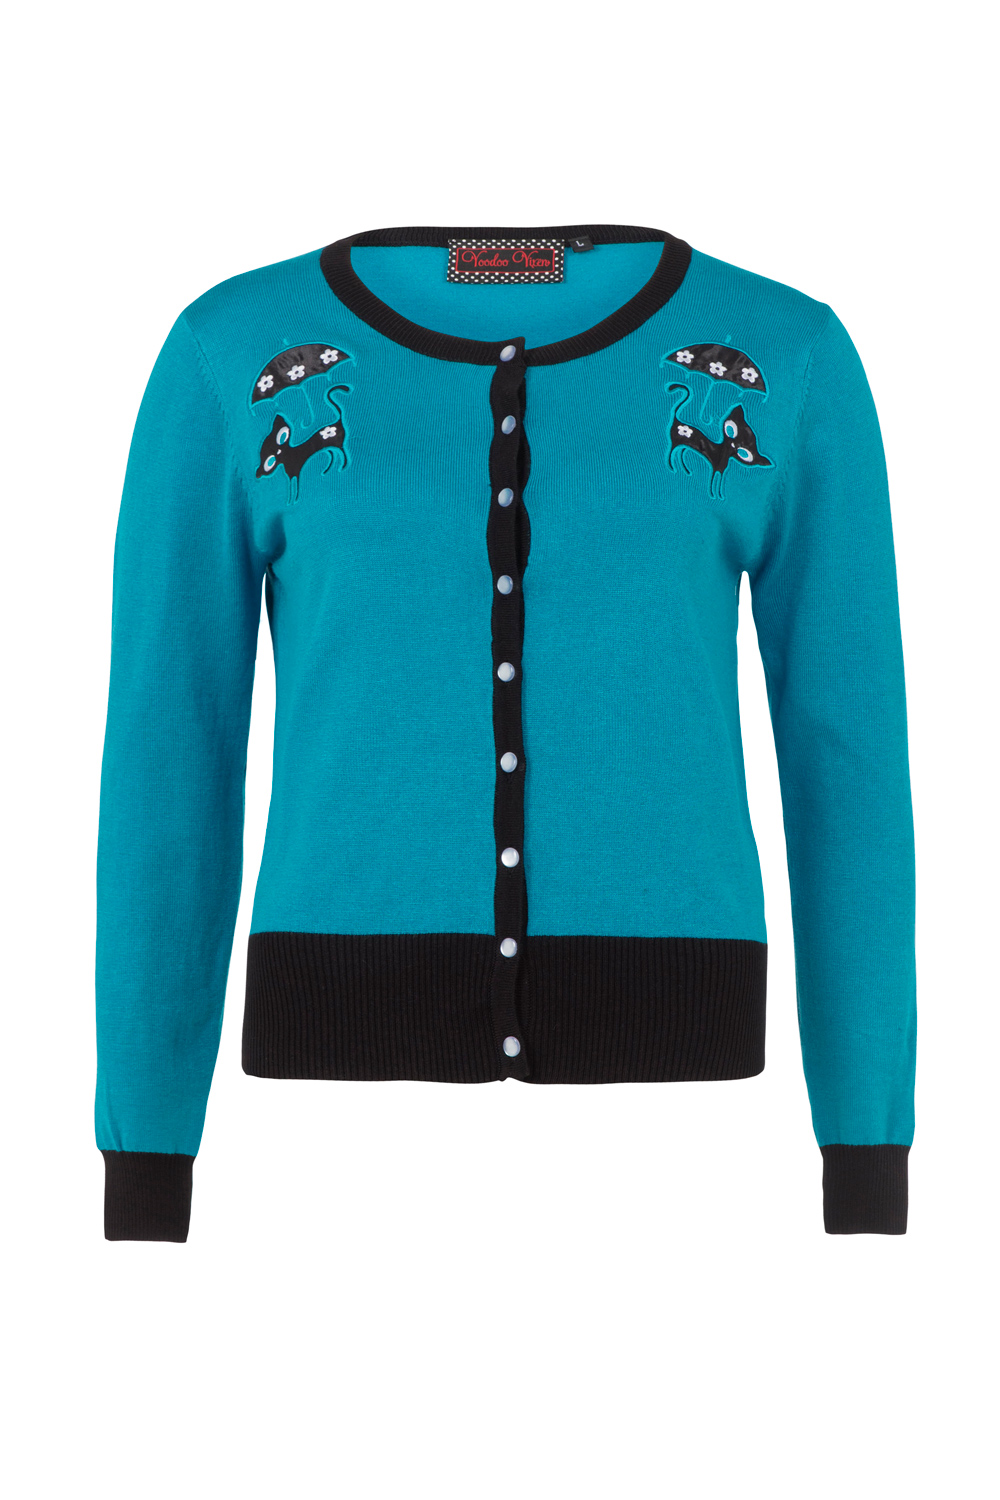 Clarissa Blue Plus Size Kitty Cardigan